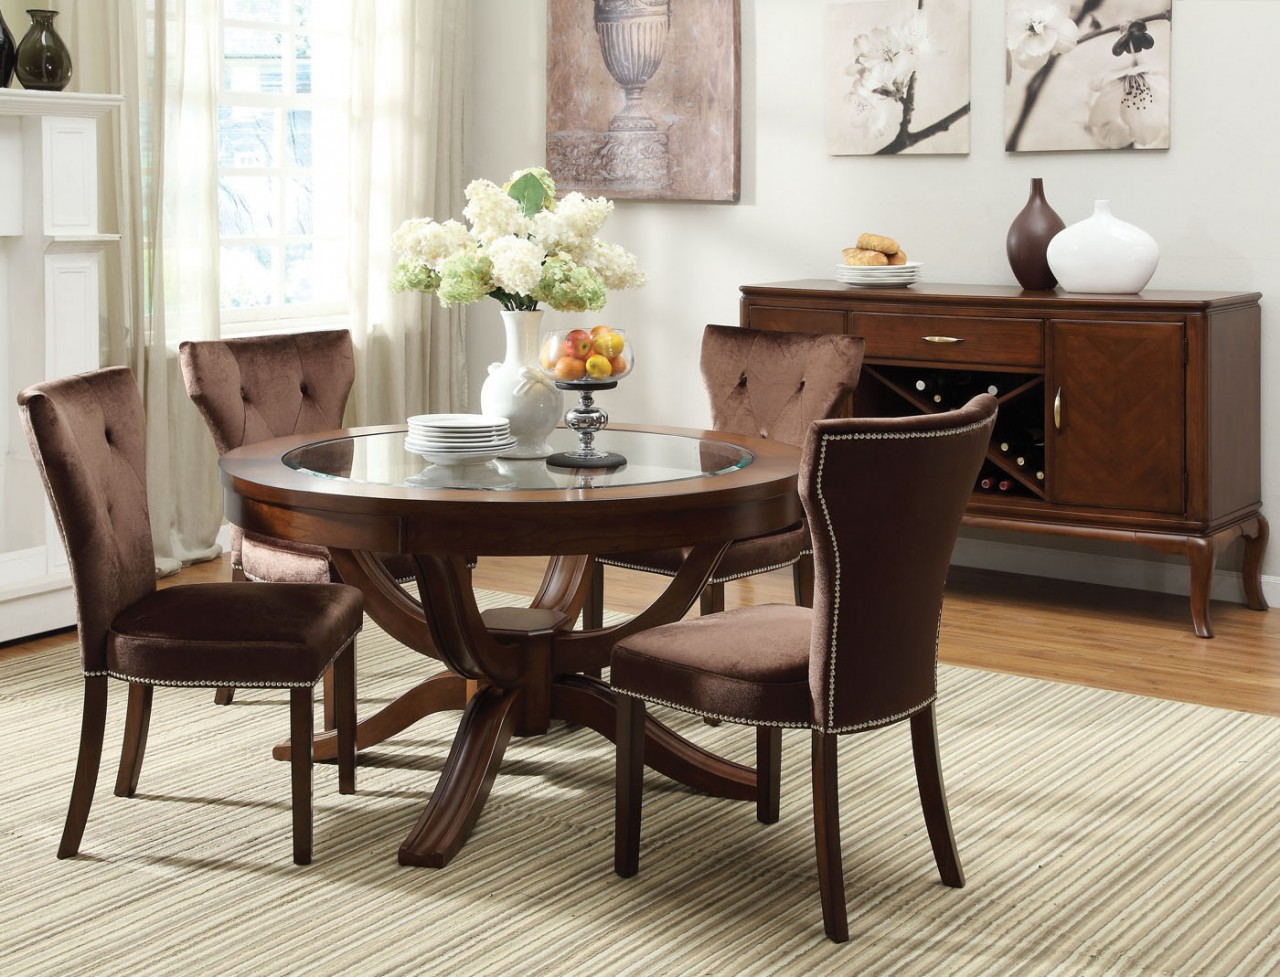 Alluring round glass top dining room   tables for every room of the house